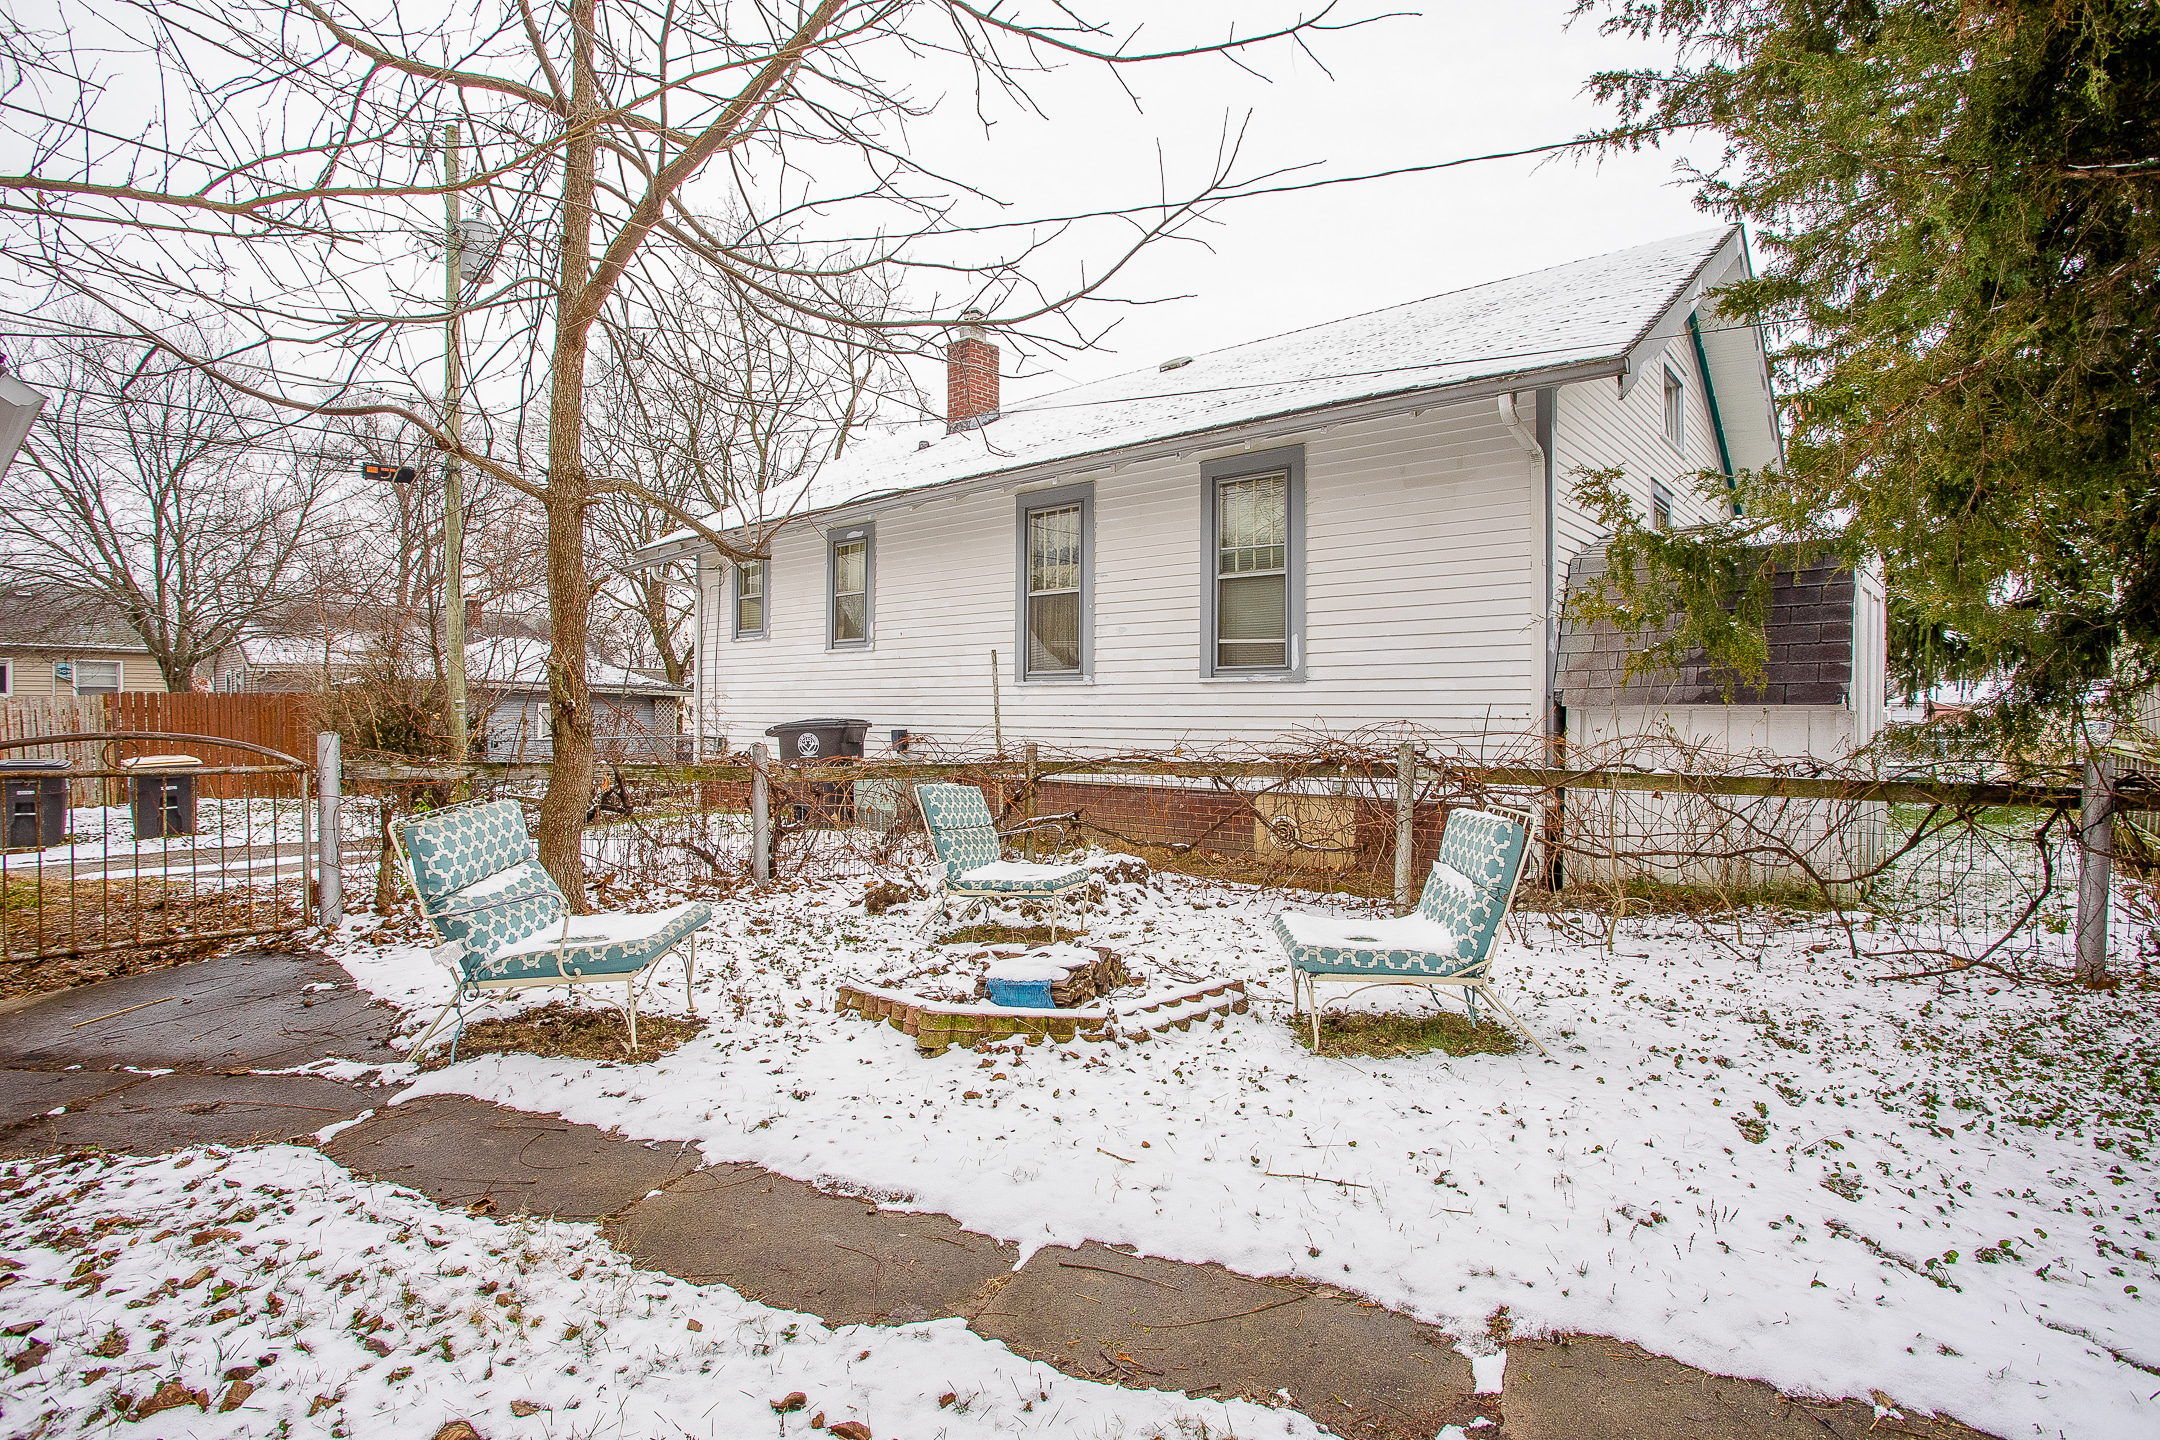 lawn chairs in snow